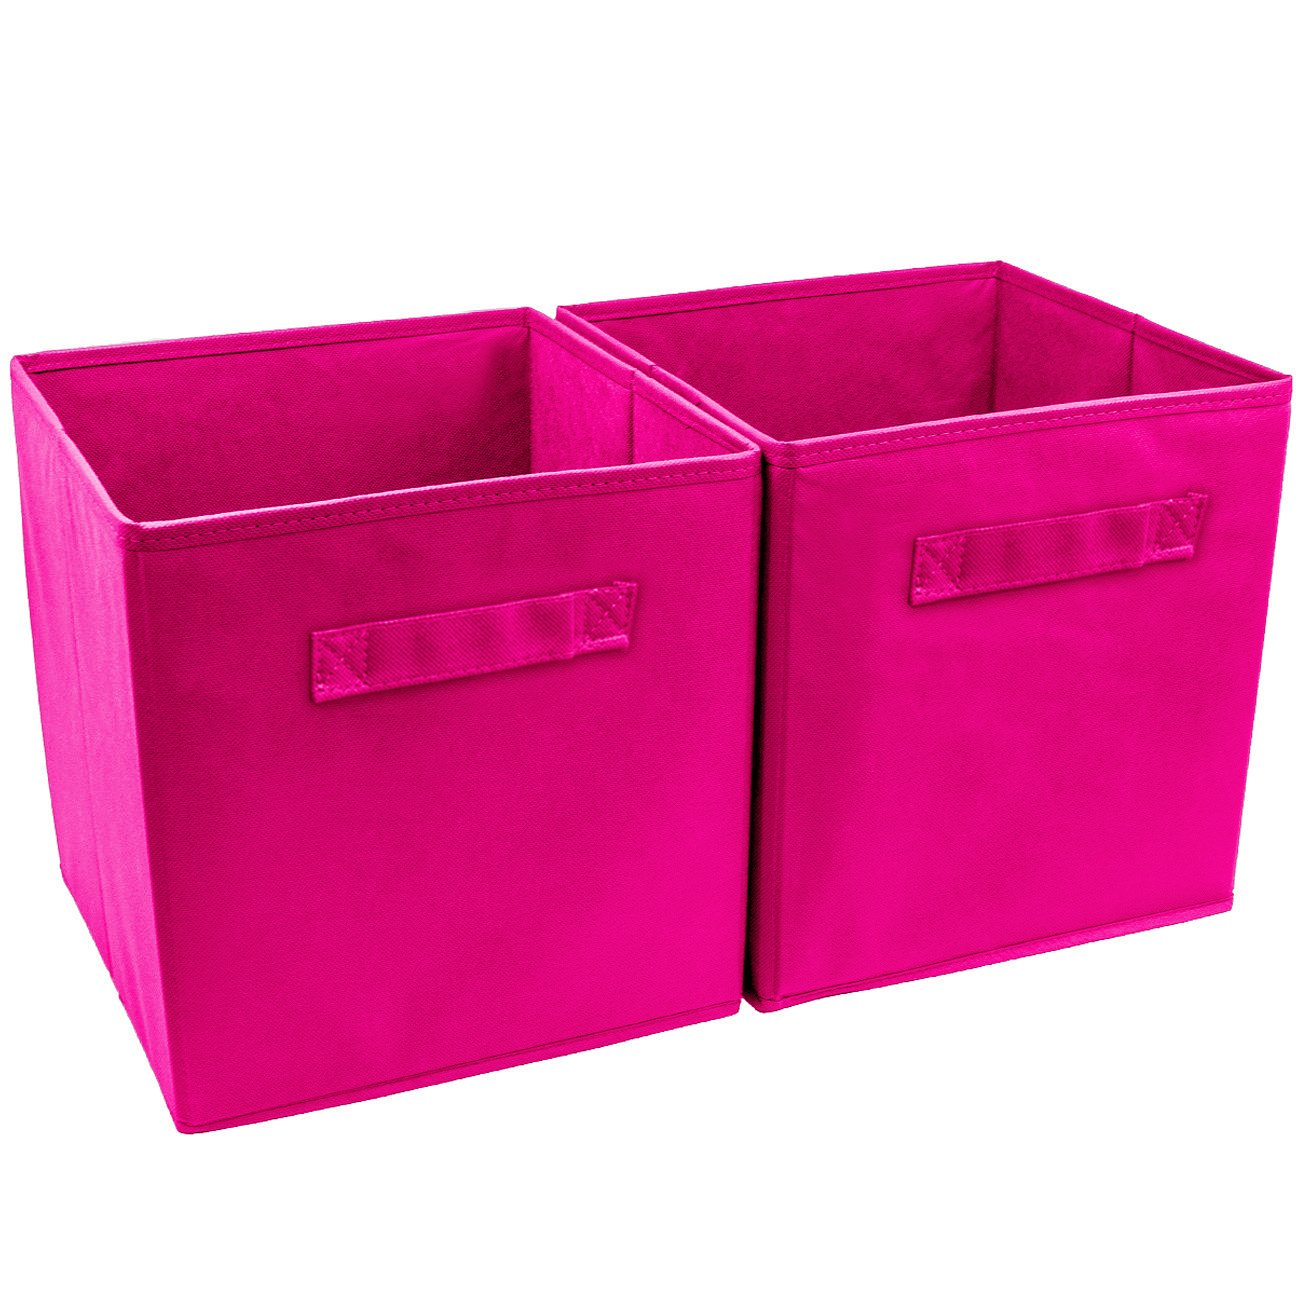 Wtape Practical Foldable Cube Storage Bins, 2-Pack Fabric Drawers, Blue